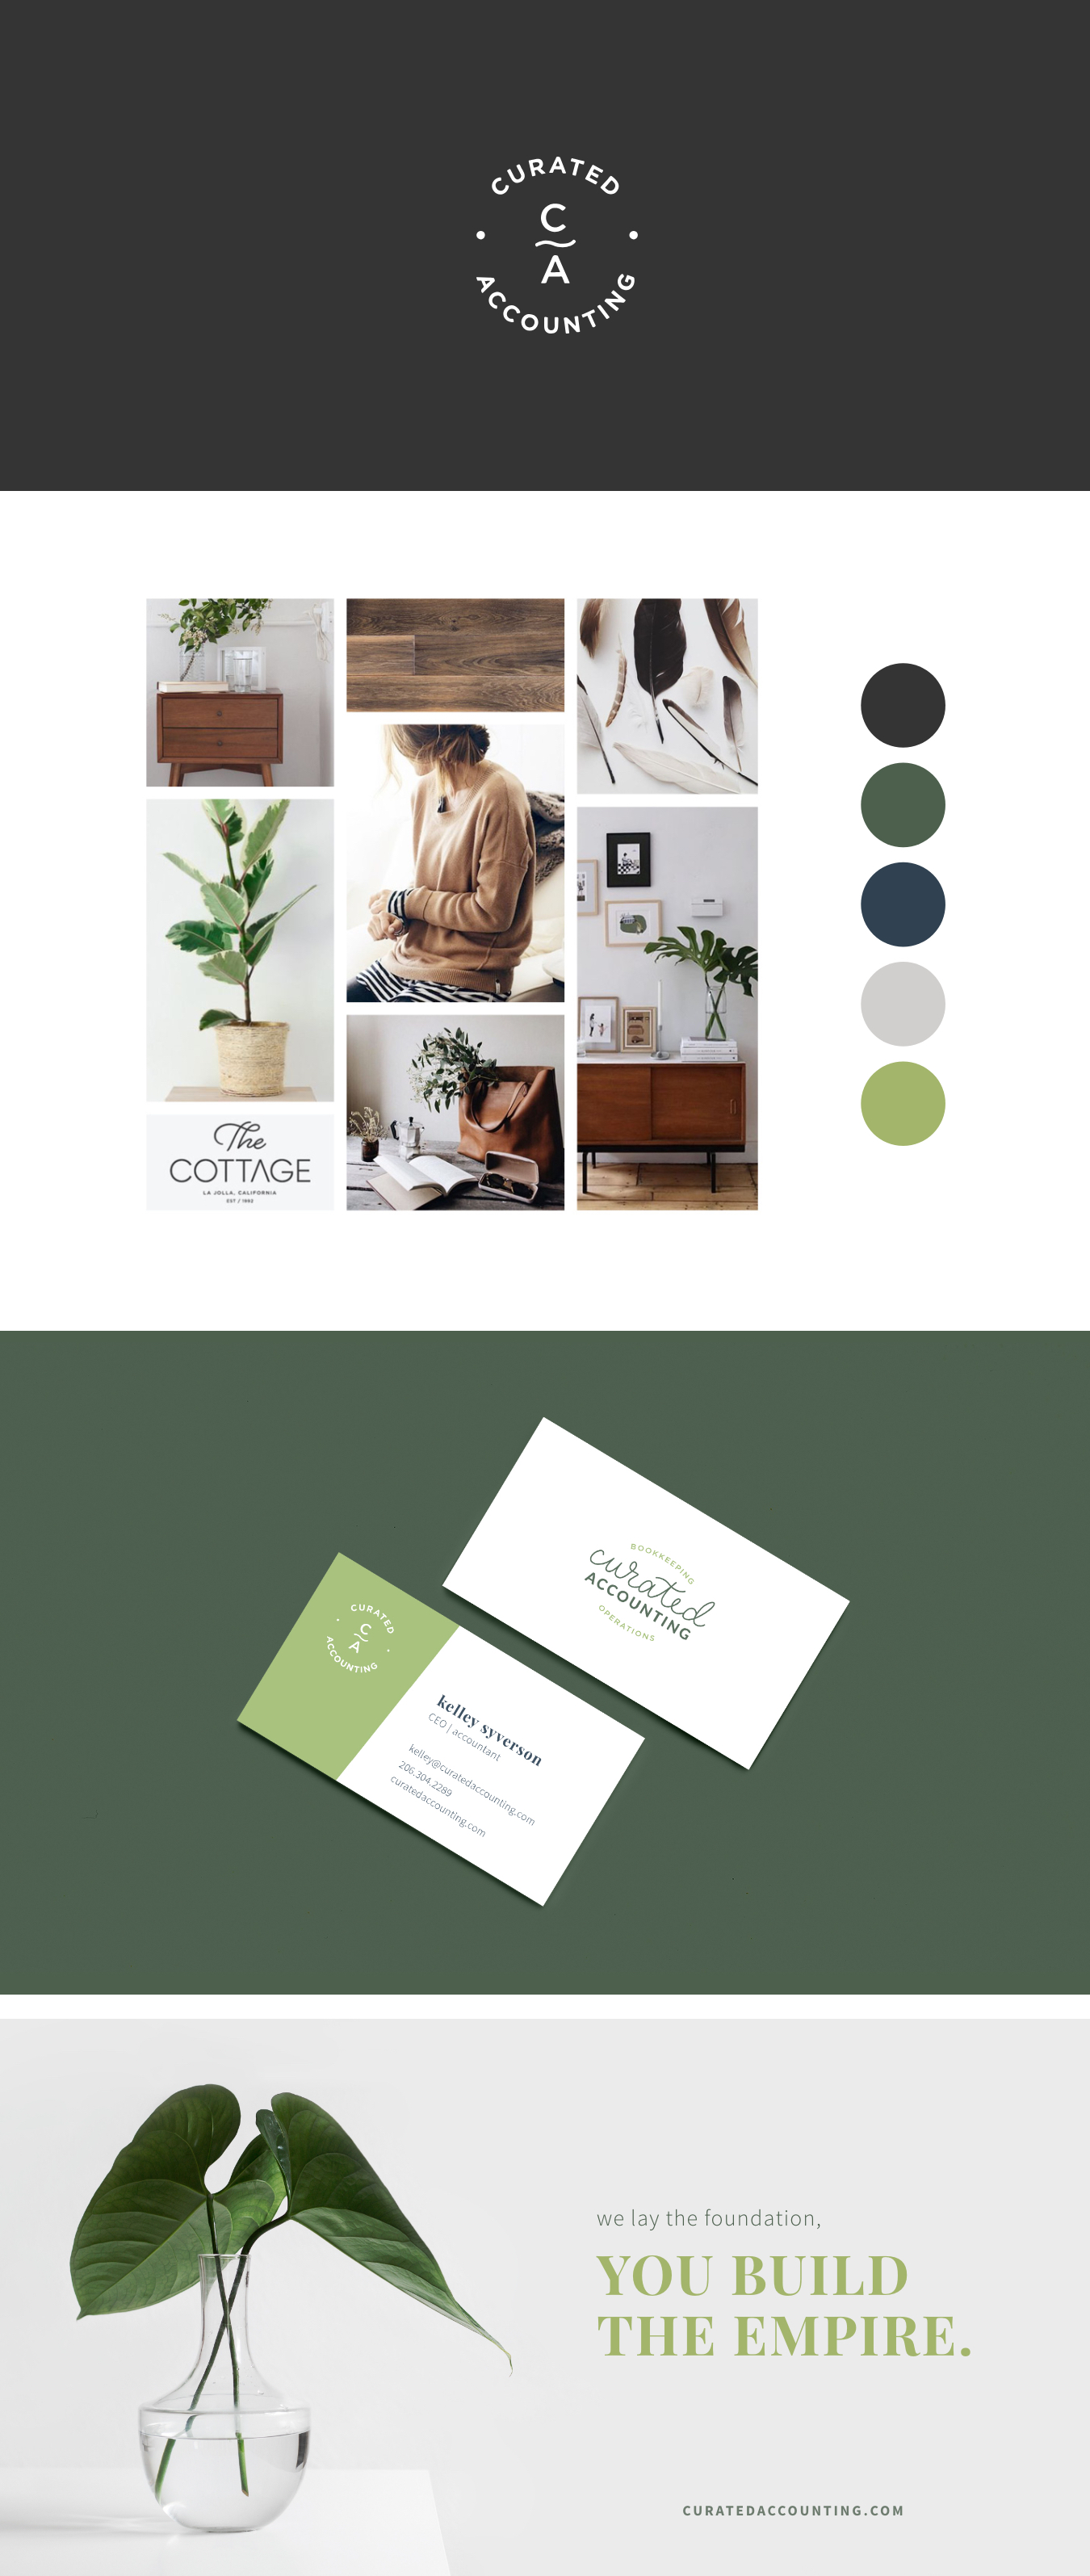 Curated Accounting | Brand Design | Inspiration | Samantha Madeo Design